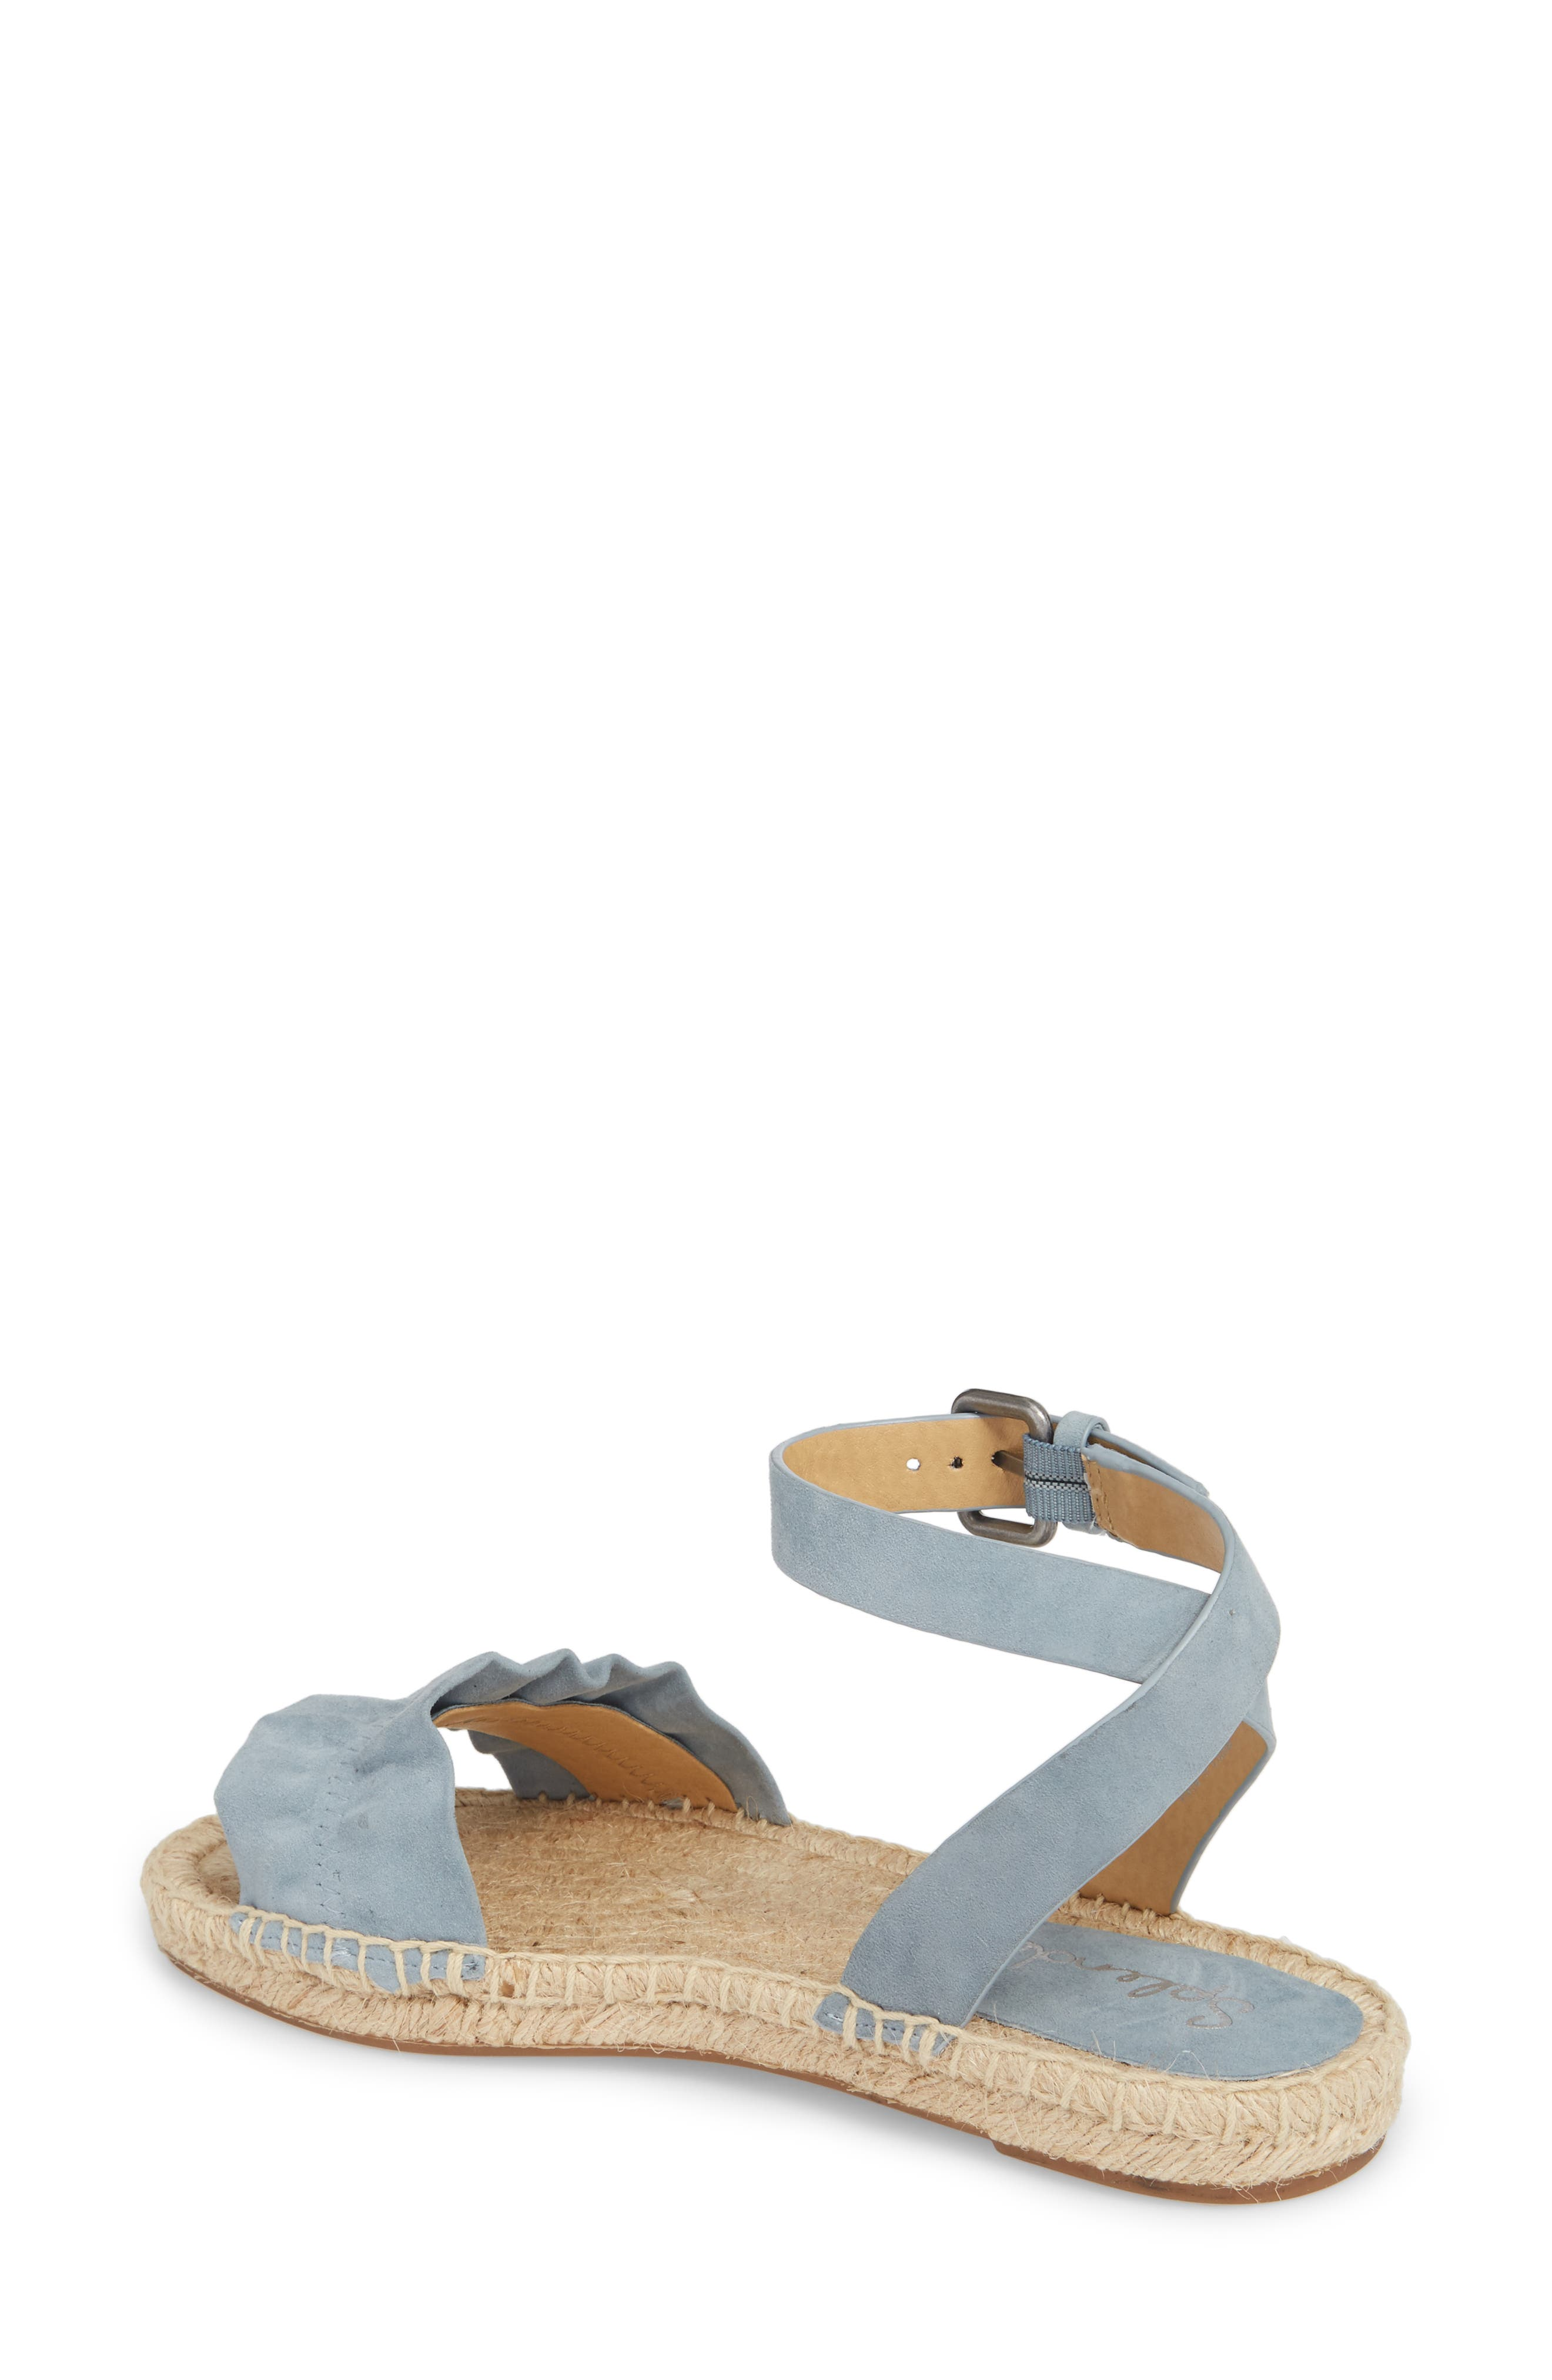 Becca Ruffled Espadrille Sandal,                             Alternate thumbnail 2, color,                             Shadow Blue Suede